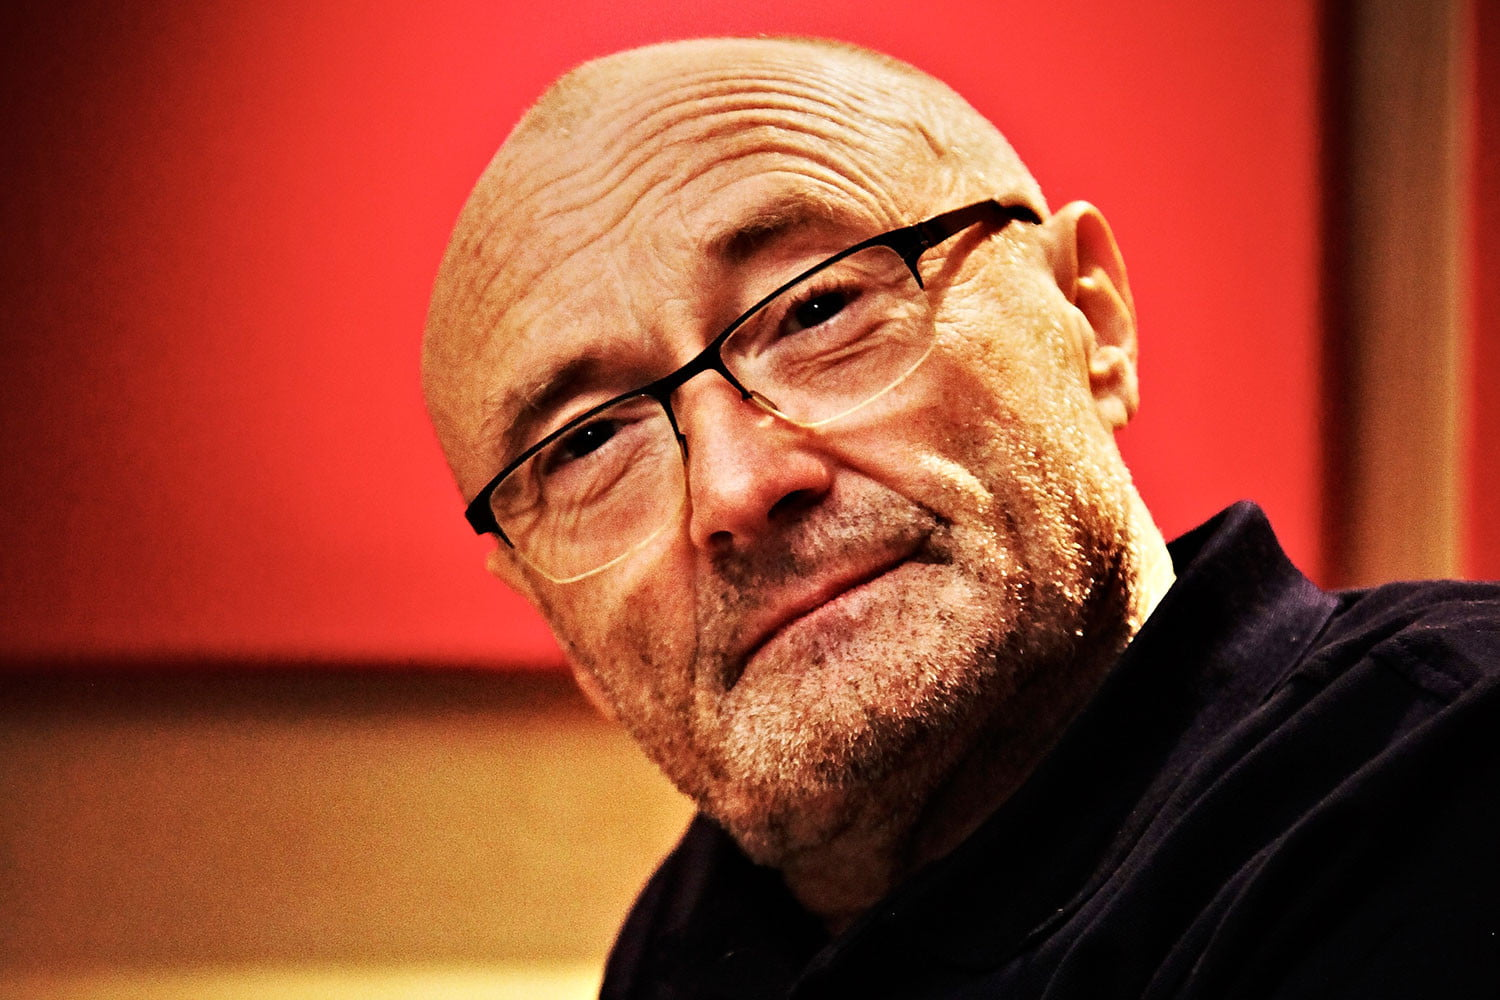 Wall Vinyl Interview Phil Collins On Both Sides Face Value